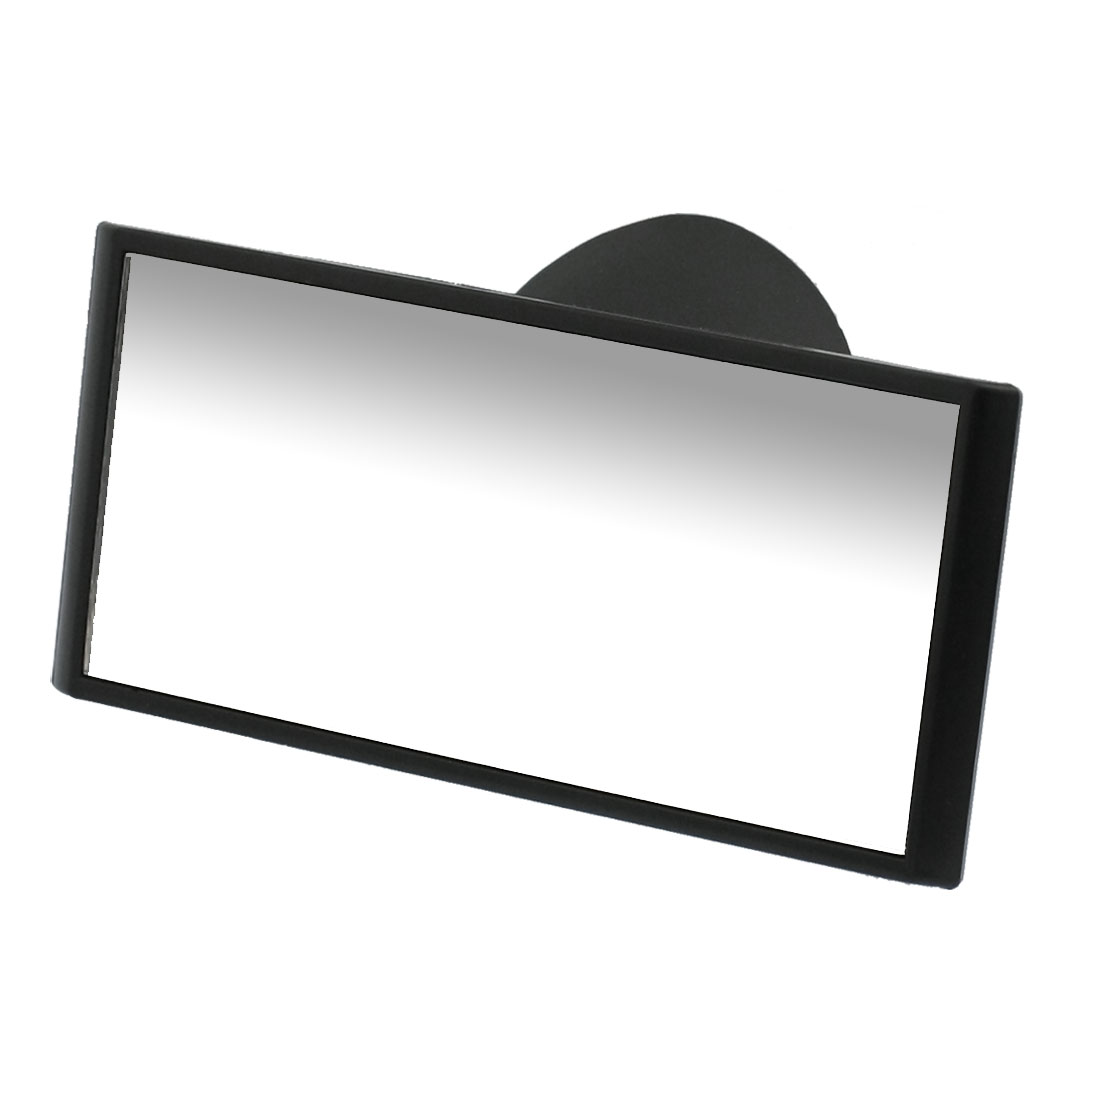 Auto Car Rectangular Black Plastic Housing Rear View Blind Spot Mirror MT-201